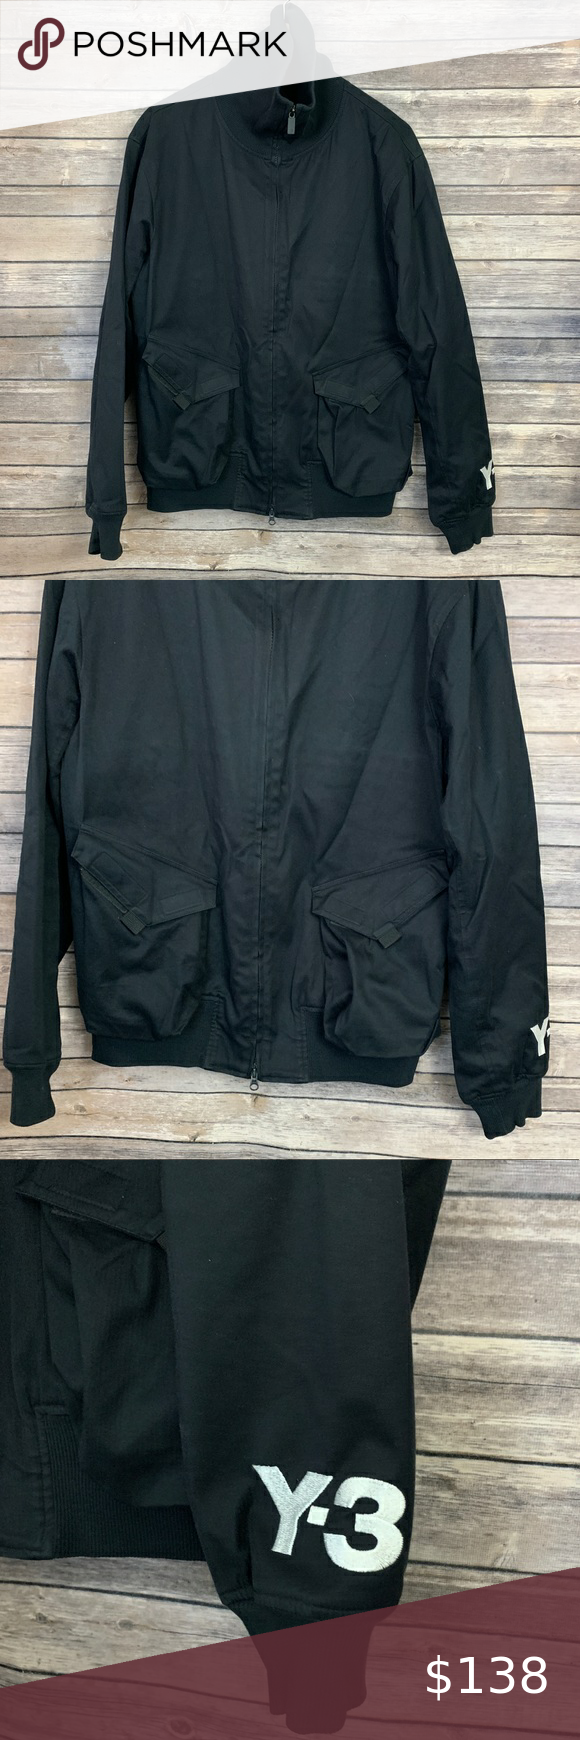 Adidas Y 3 Yohji Yamamoto Black Jacket Pre Owned Condition Very Good Size M Pit To Pit 21 Length 27 Please No Black Jacket Jackets Oversized Denim Jacket